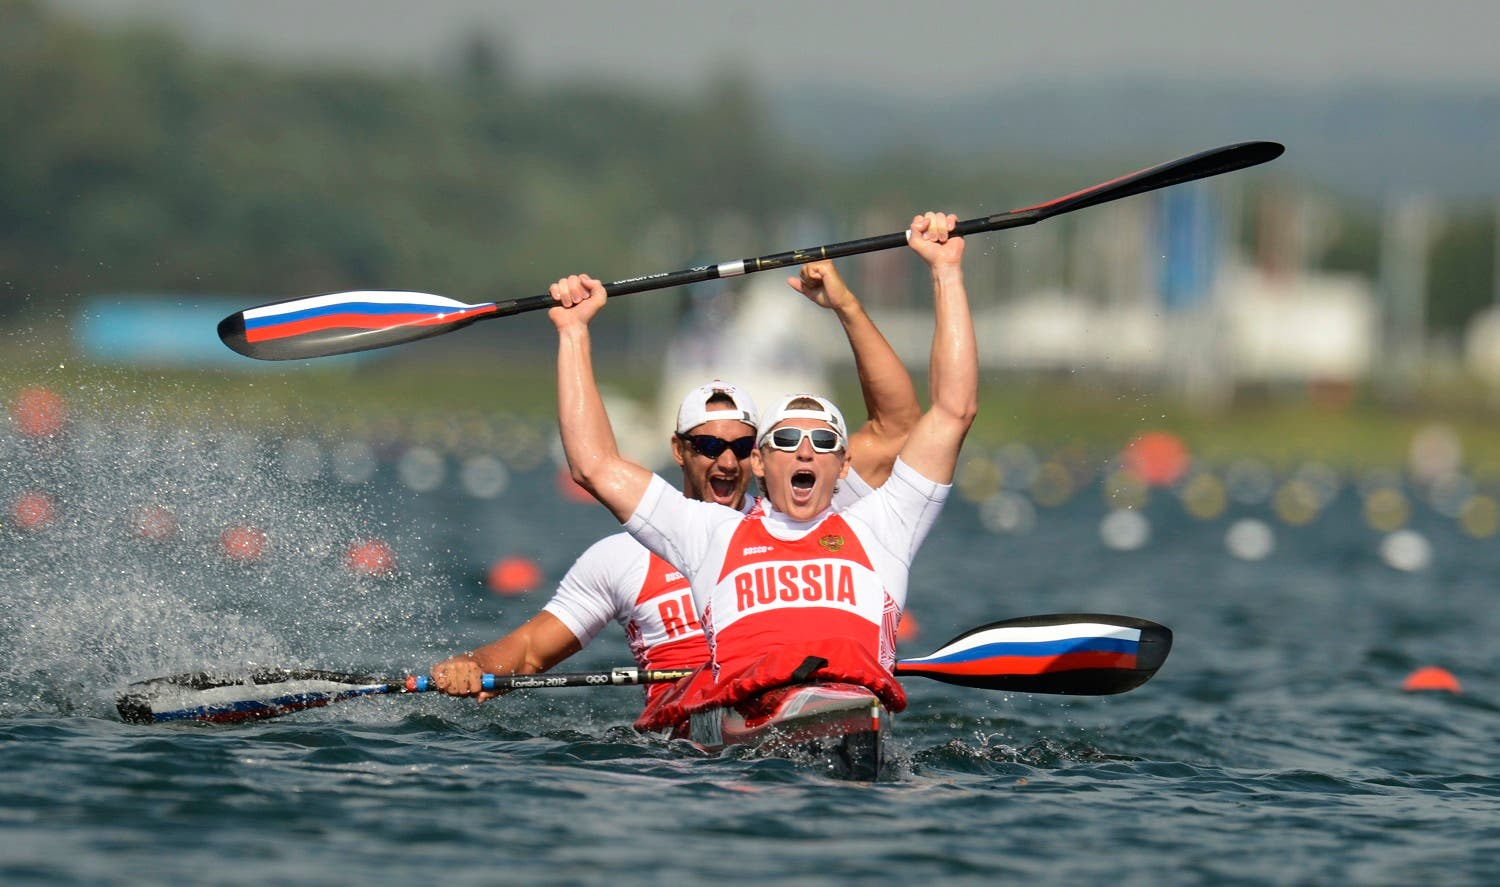 Russia's Yury Postrigay and Alexander Dyachenko row in the men's kayak double (K2) 200m event at Eton Dorney during the London 2012 Olympic Games August 11, 2012.  (Reuters)